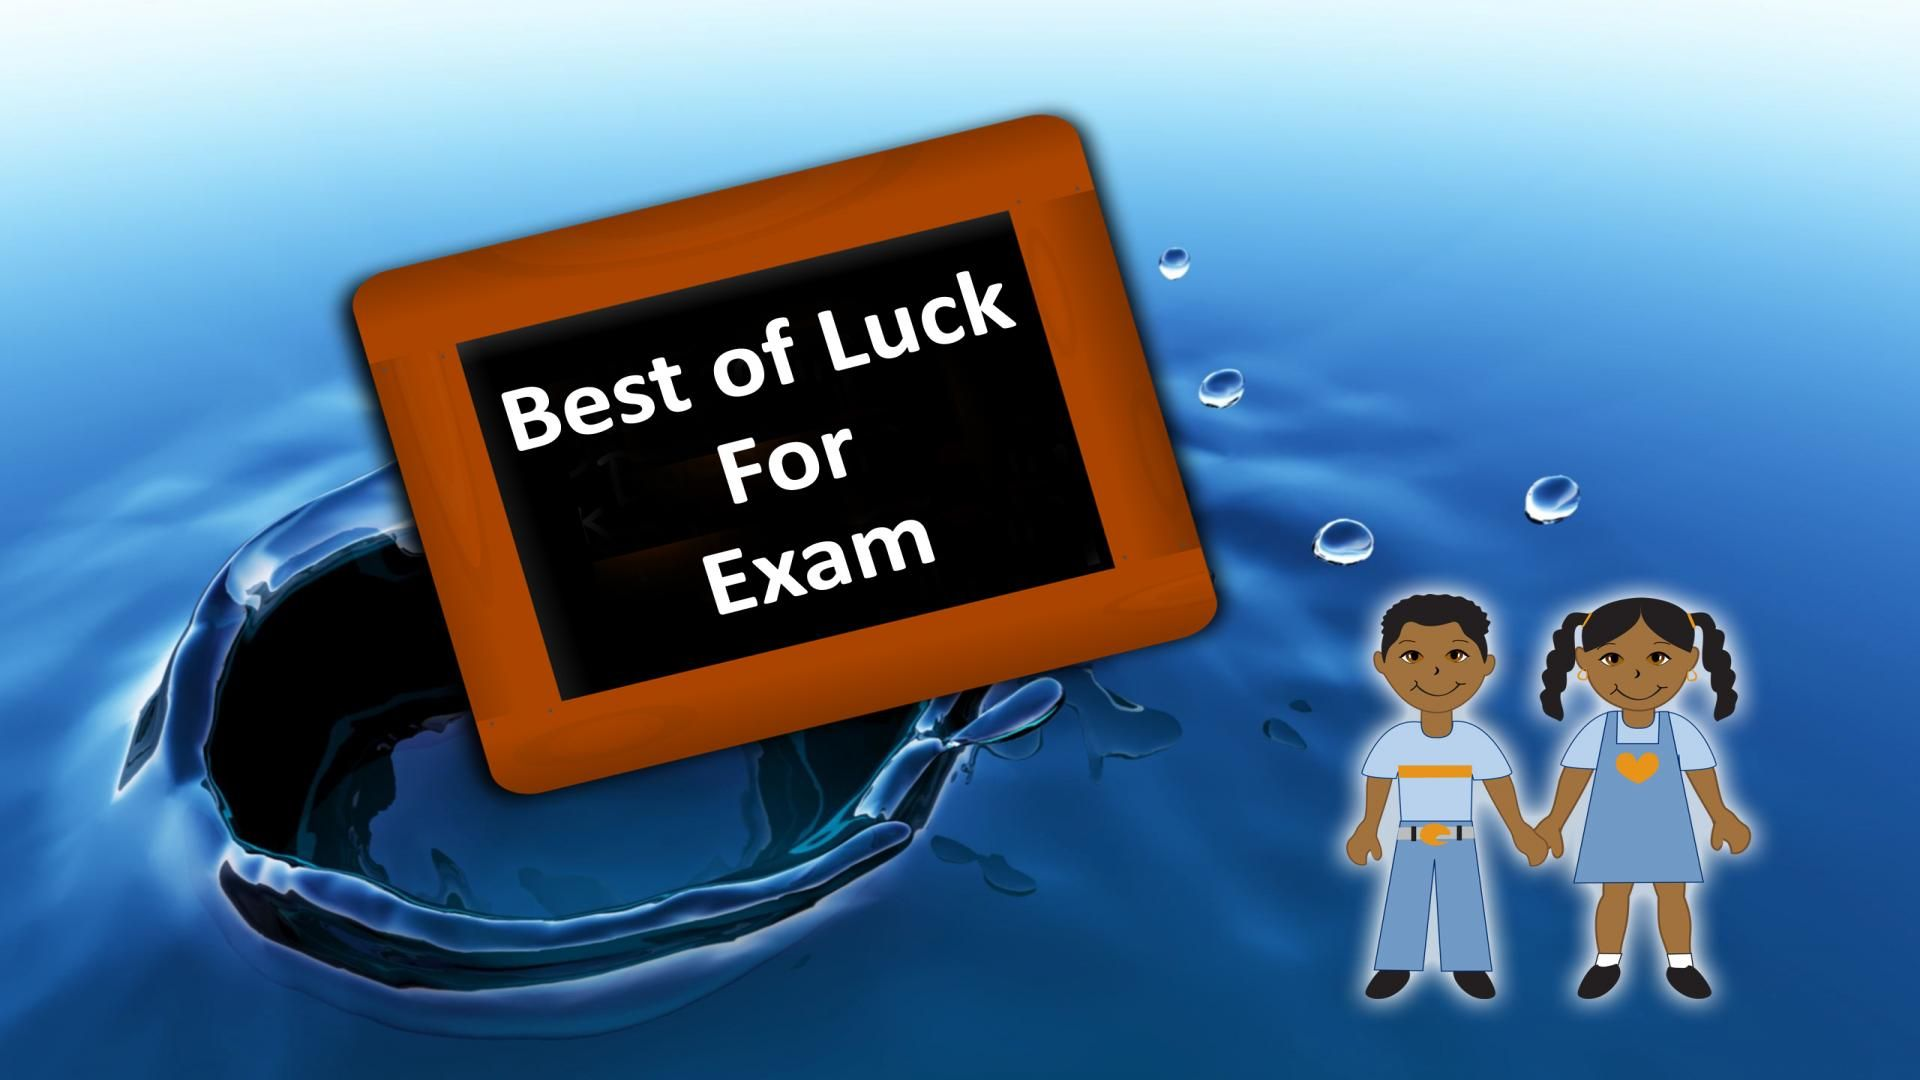 Best Of Luck For Exam Hd Wallpapers Hd Wallpapers Sayings Exam